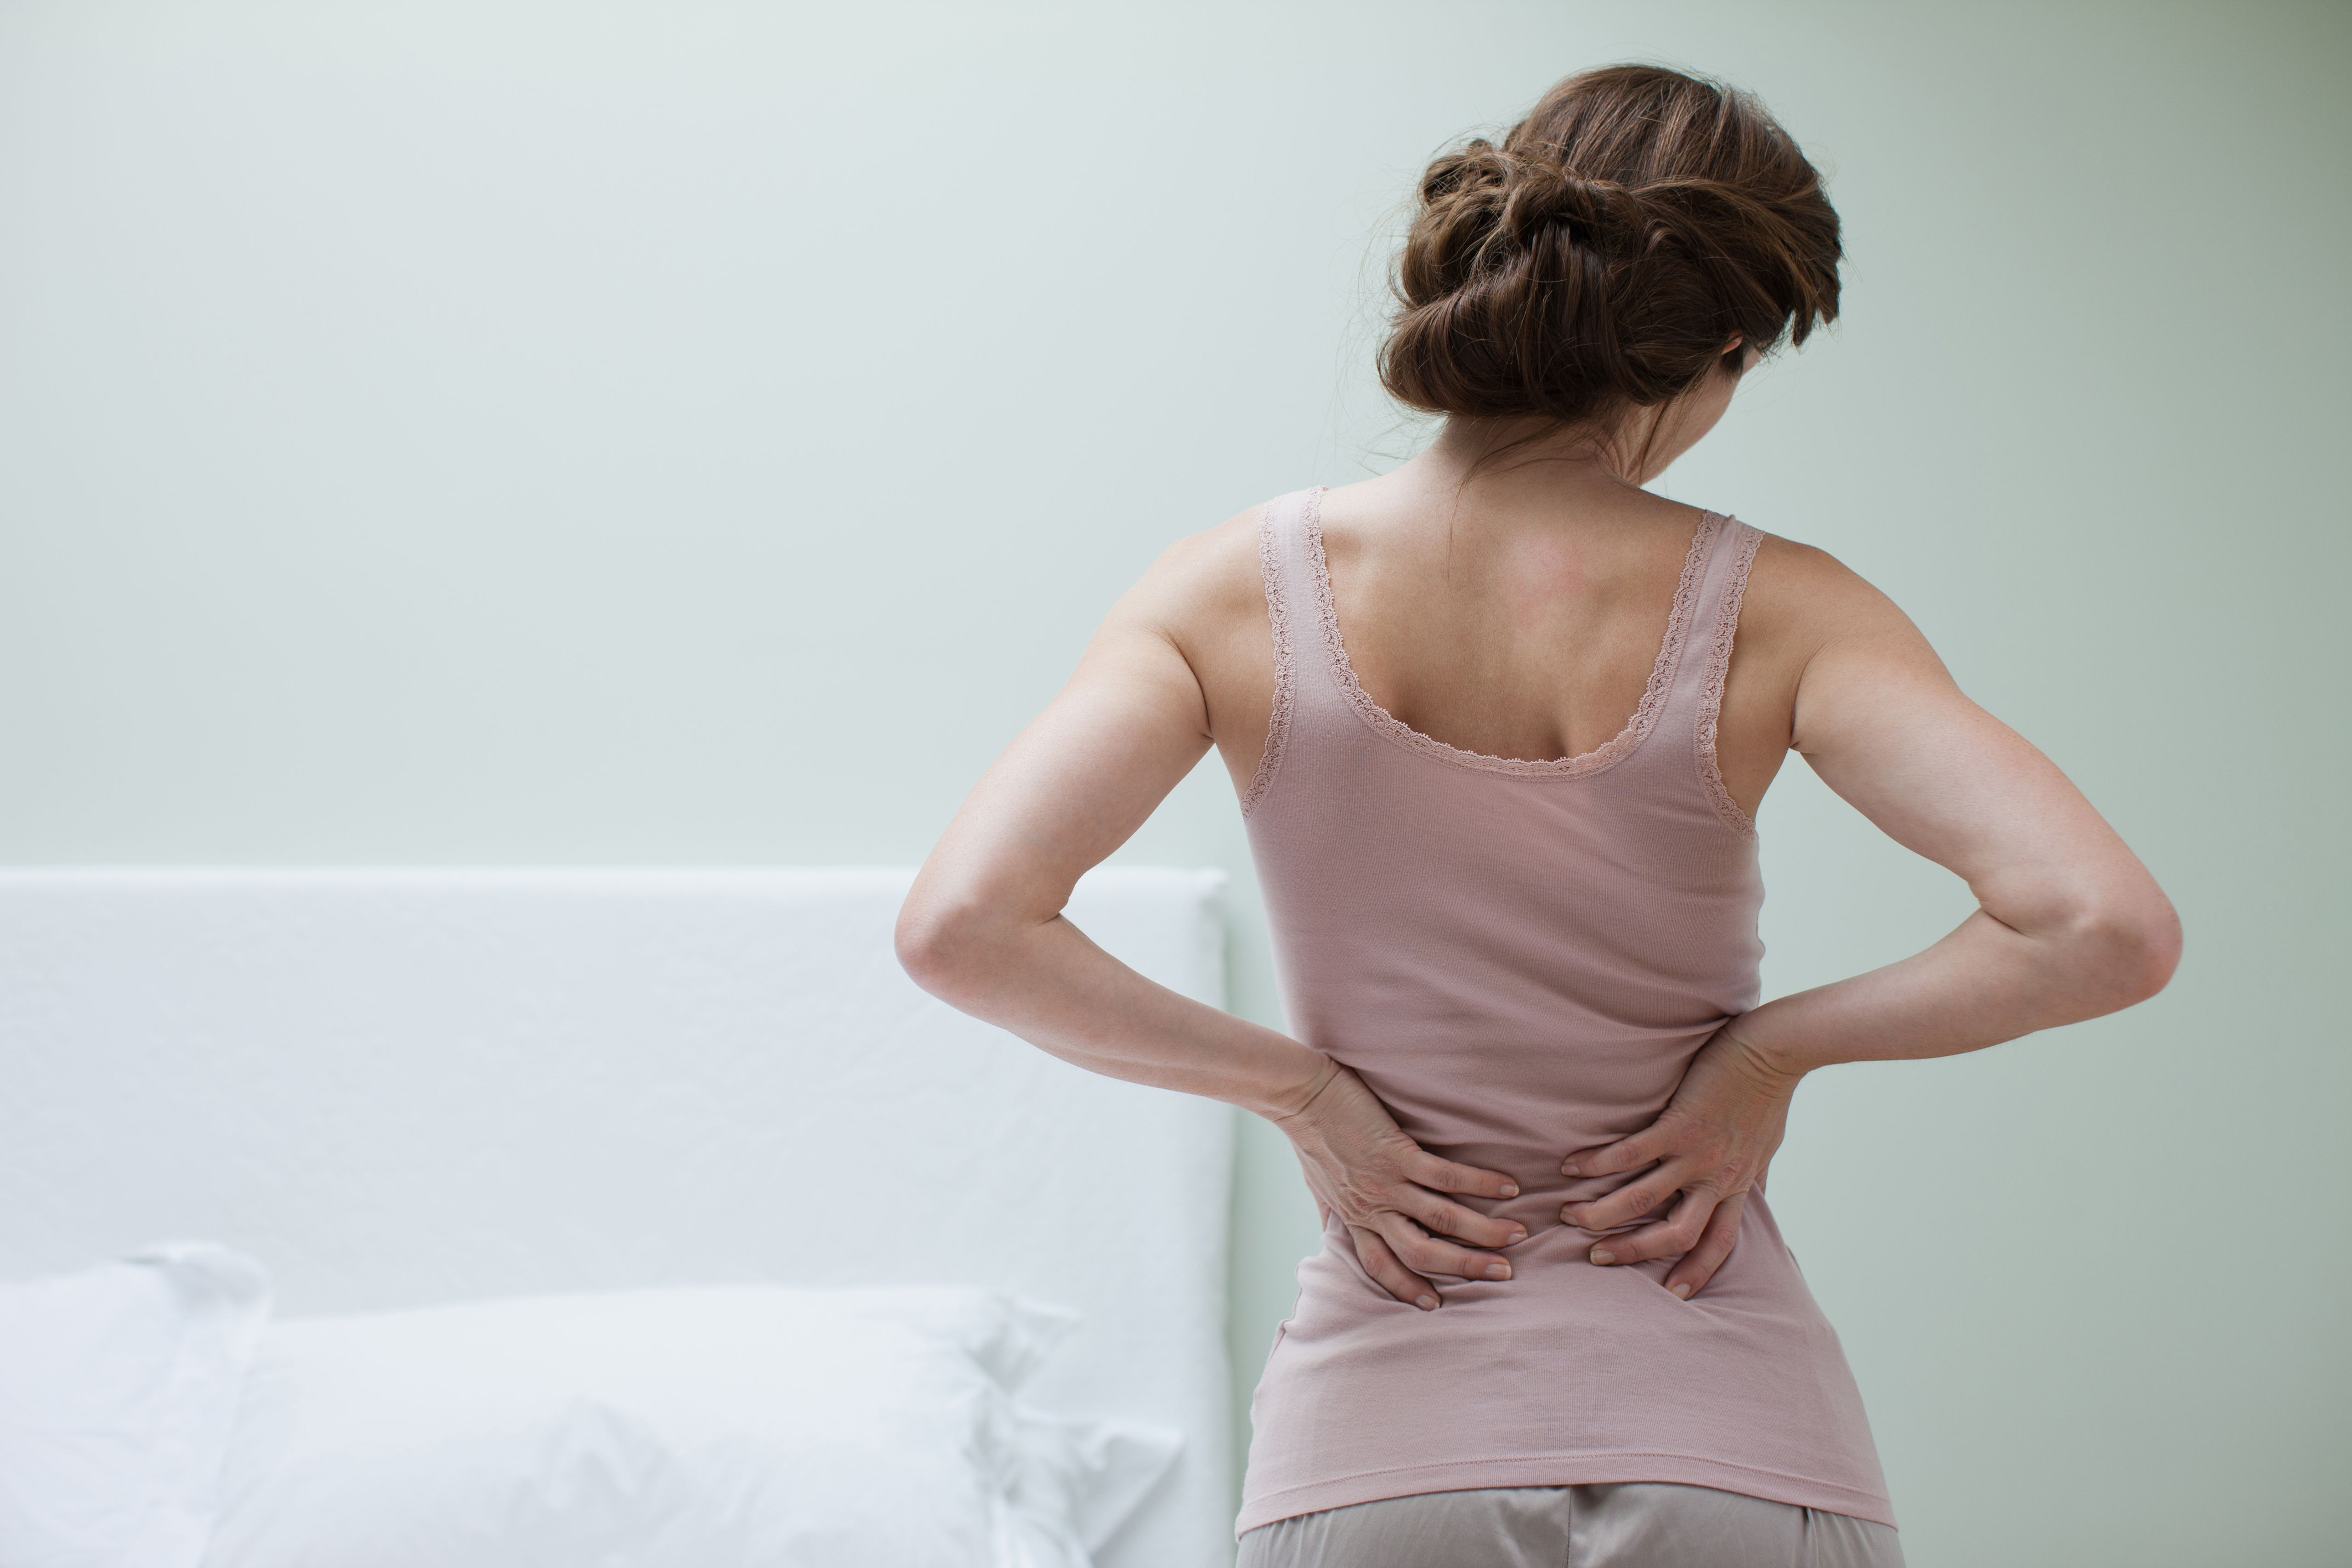 Yoga Poses to Prevent Back Pain by Improving Flexibility